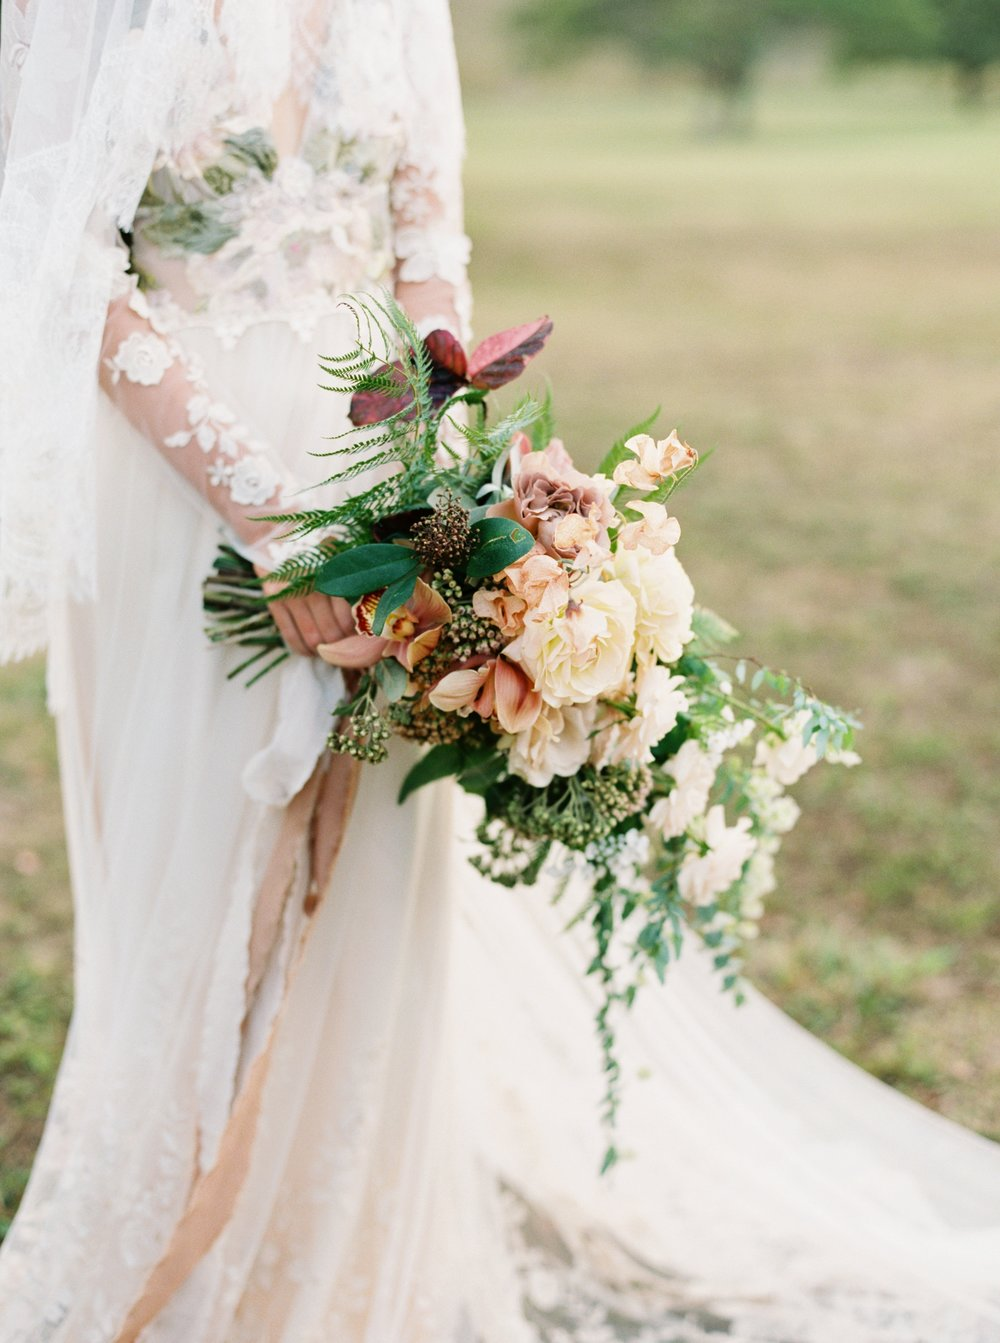 Wedding Bouquet with ribbons